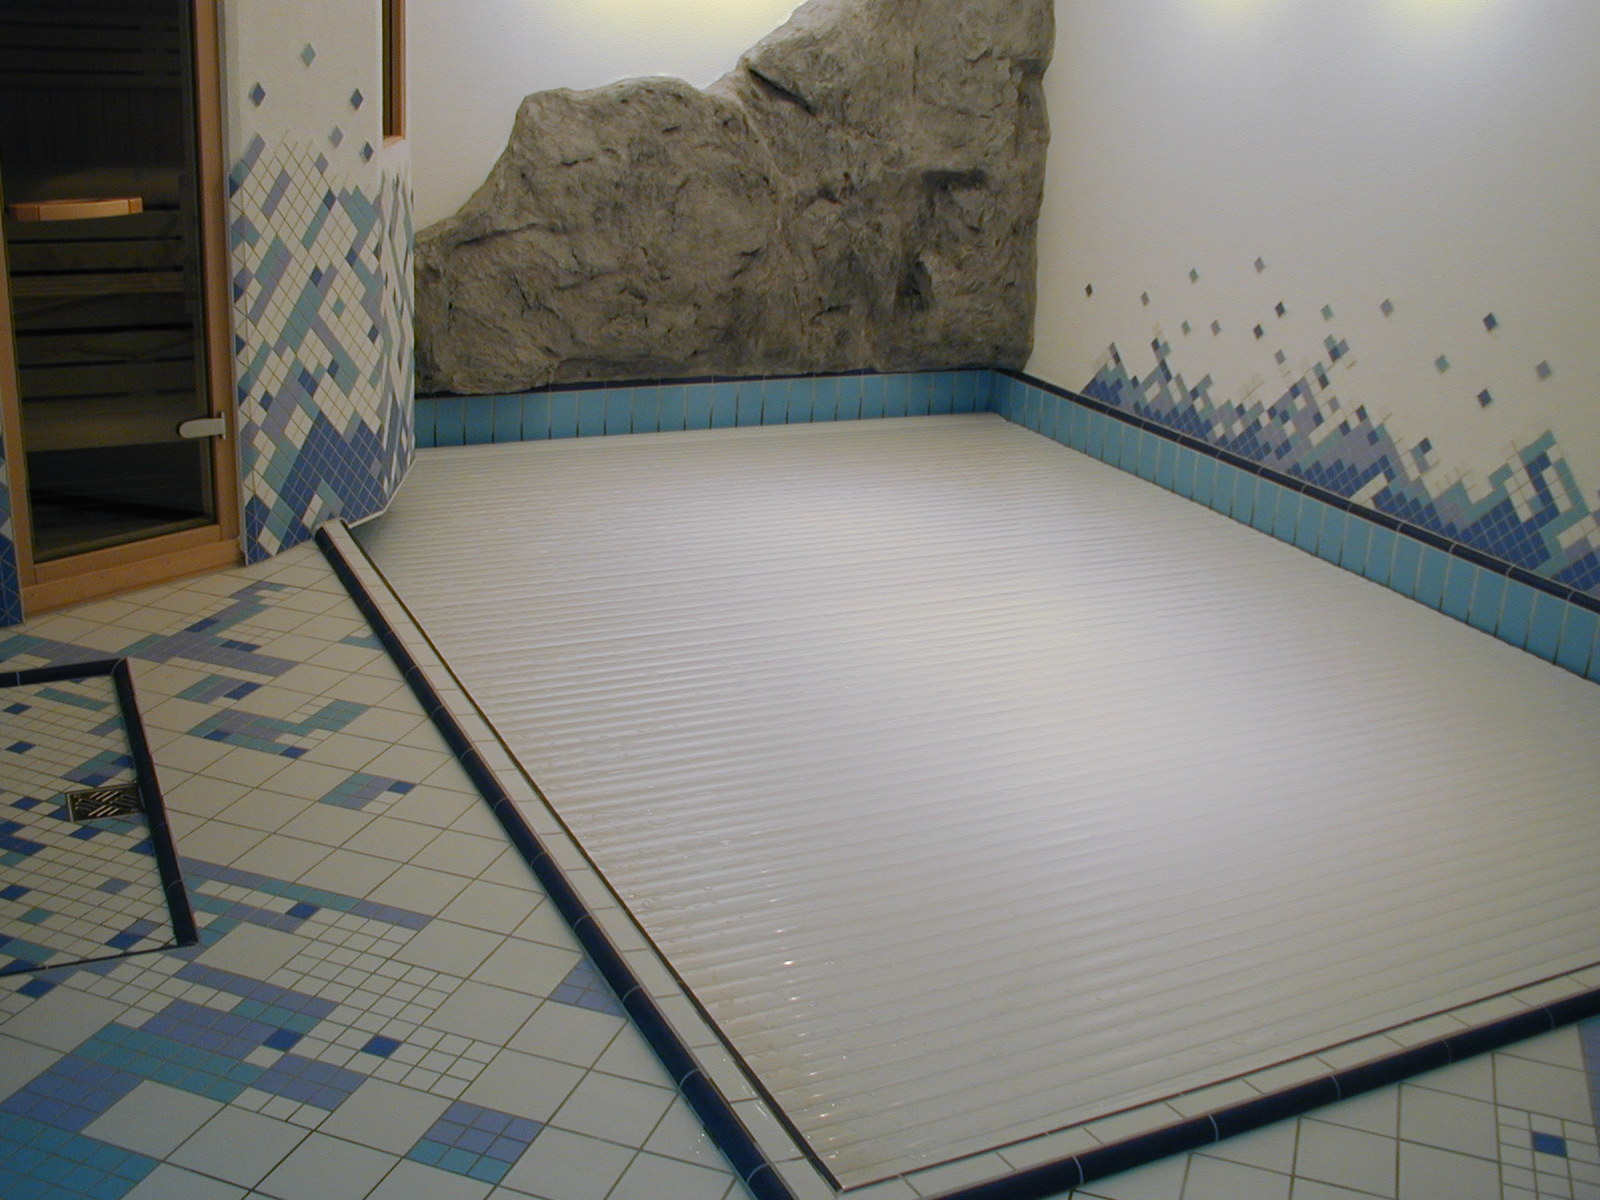 Indoor Outdoor Automatic Energy Saving Pool Covers By